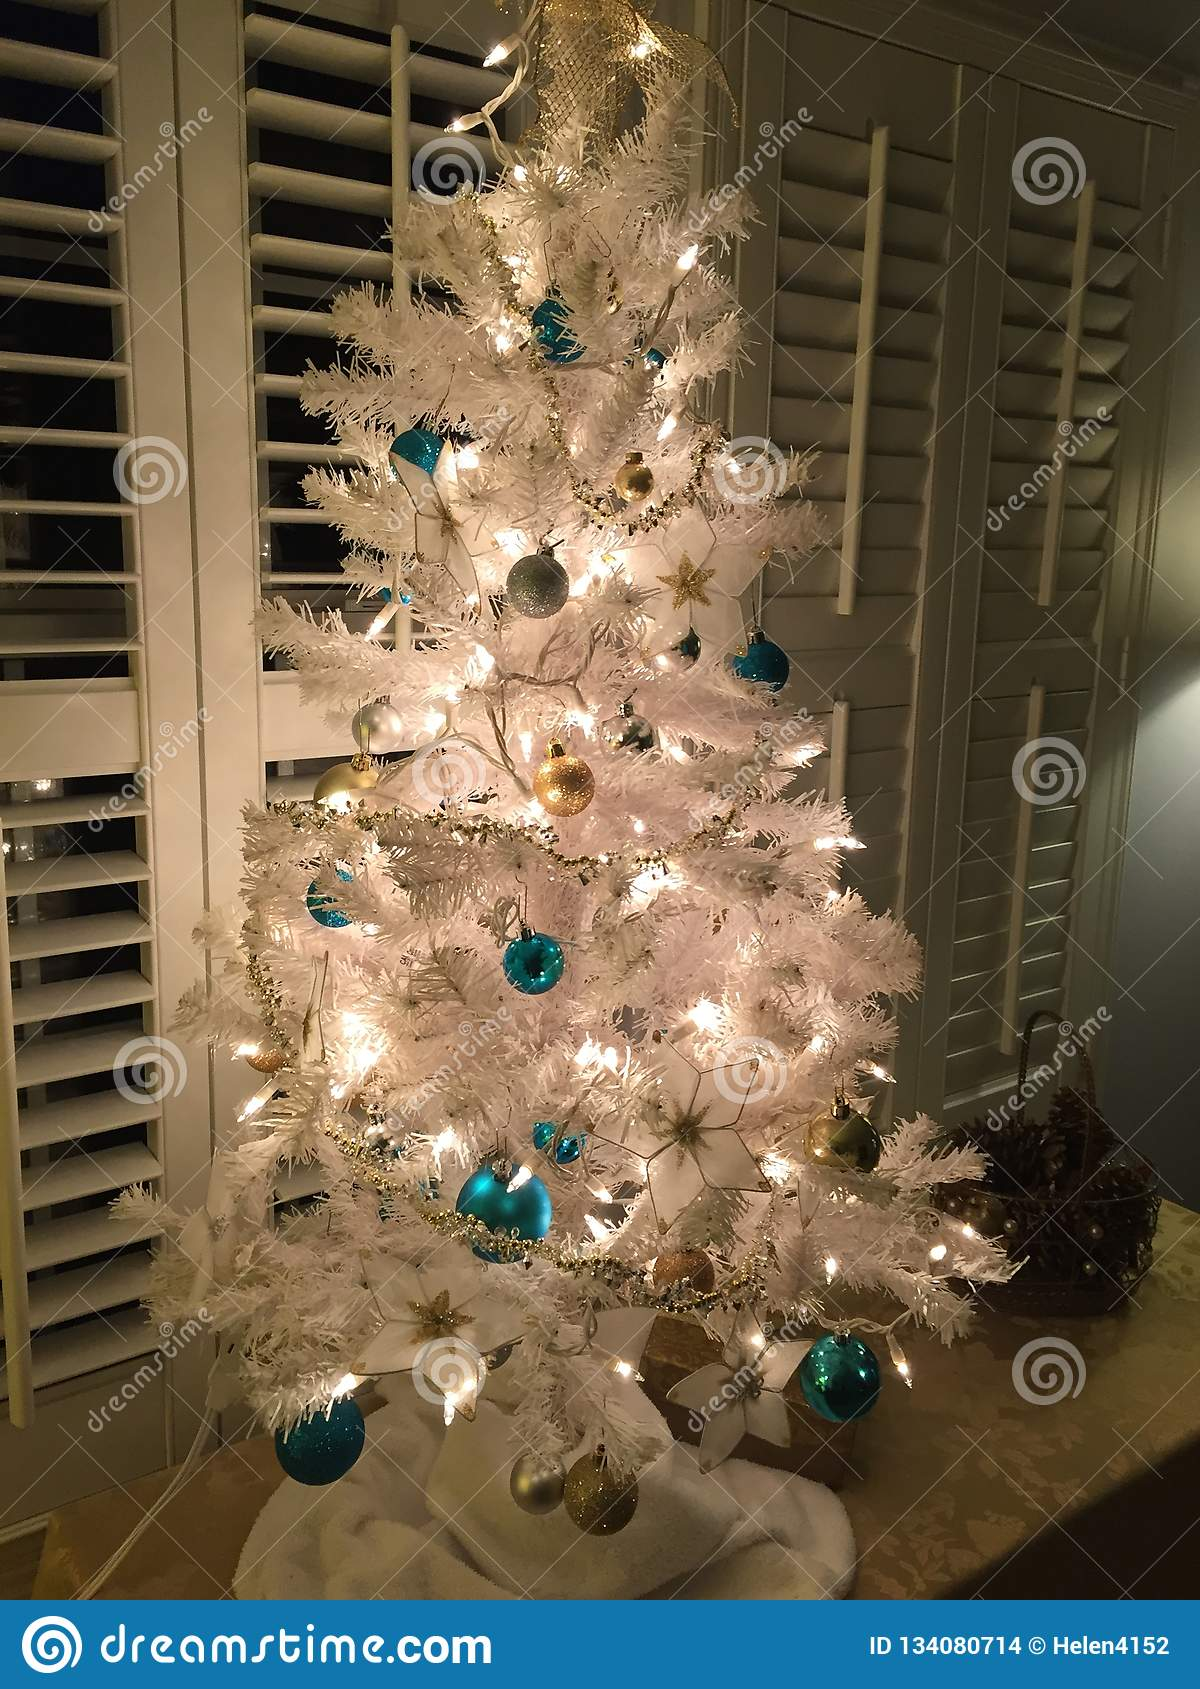 A White Artificial Christmas Tree With Ornaments Stock Photo Image Of Tree White 134080714